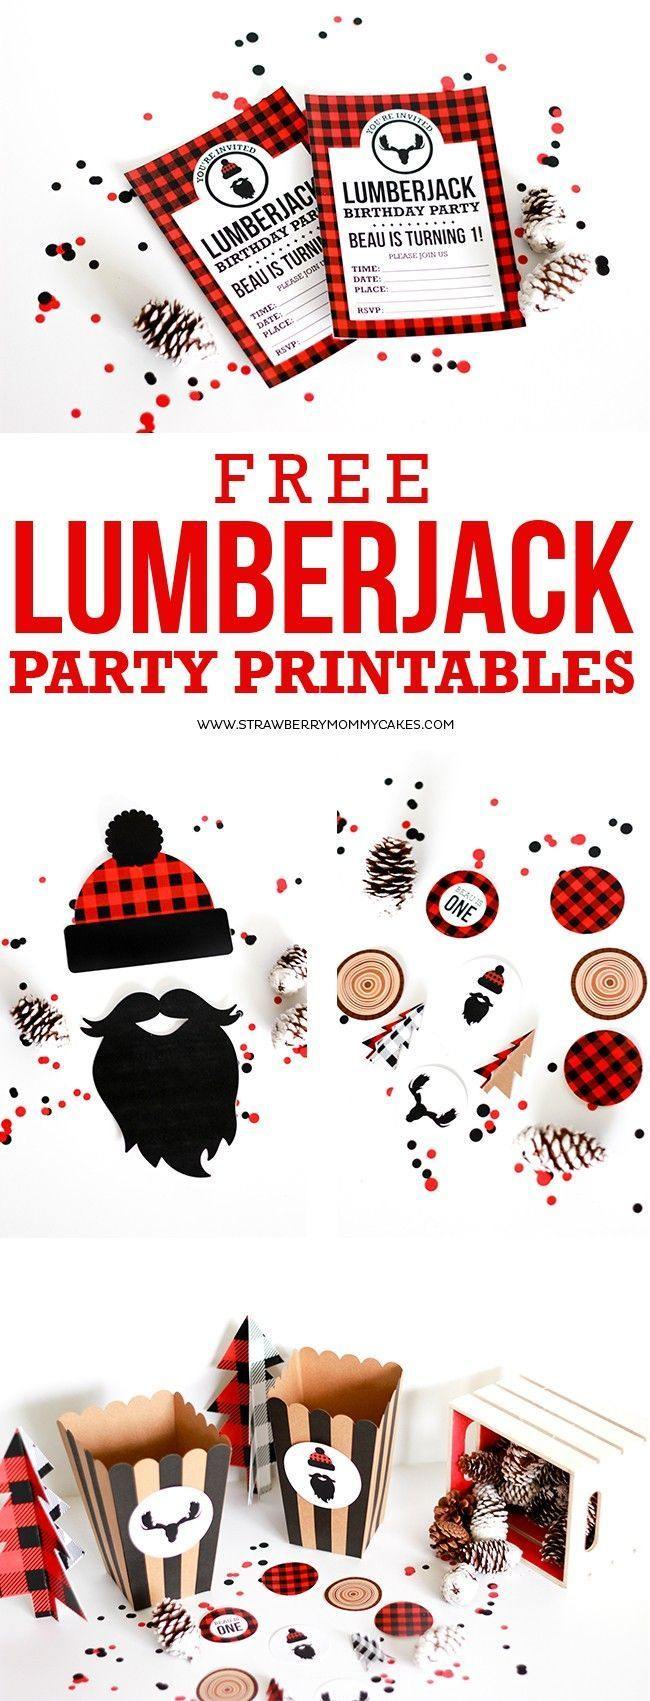 Download these FREE Lumberjack Party Printables                                                                                                                                                                                 More